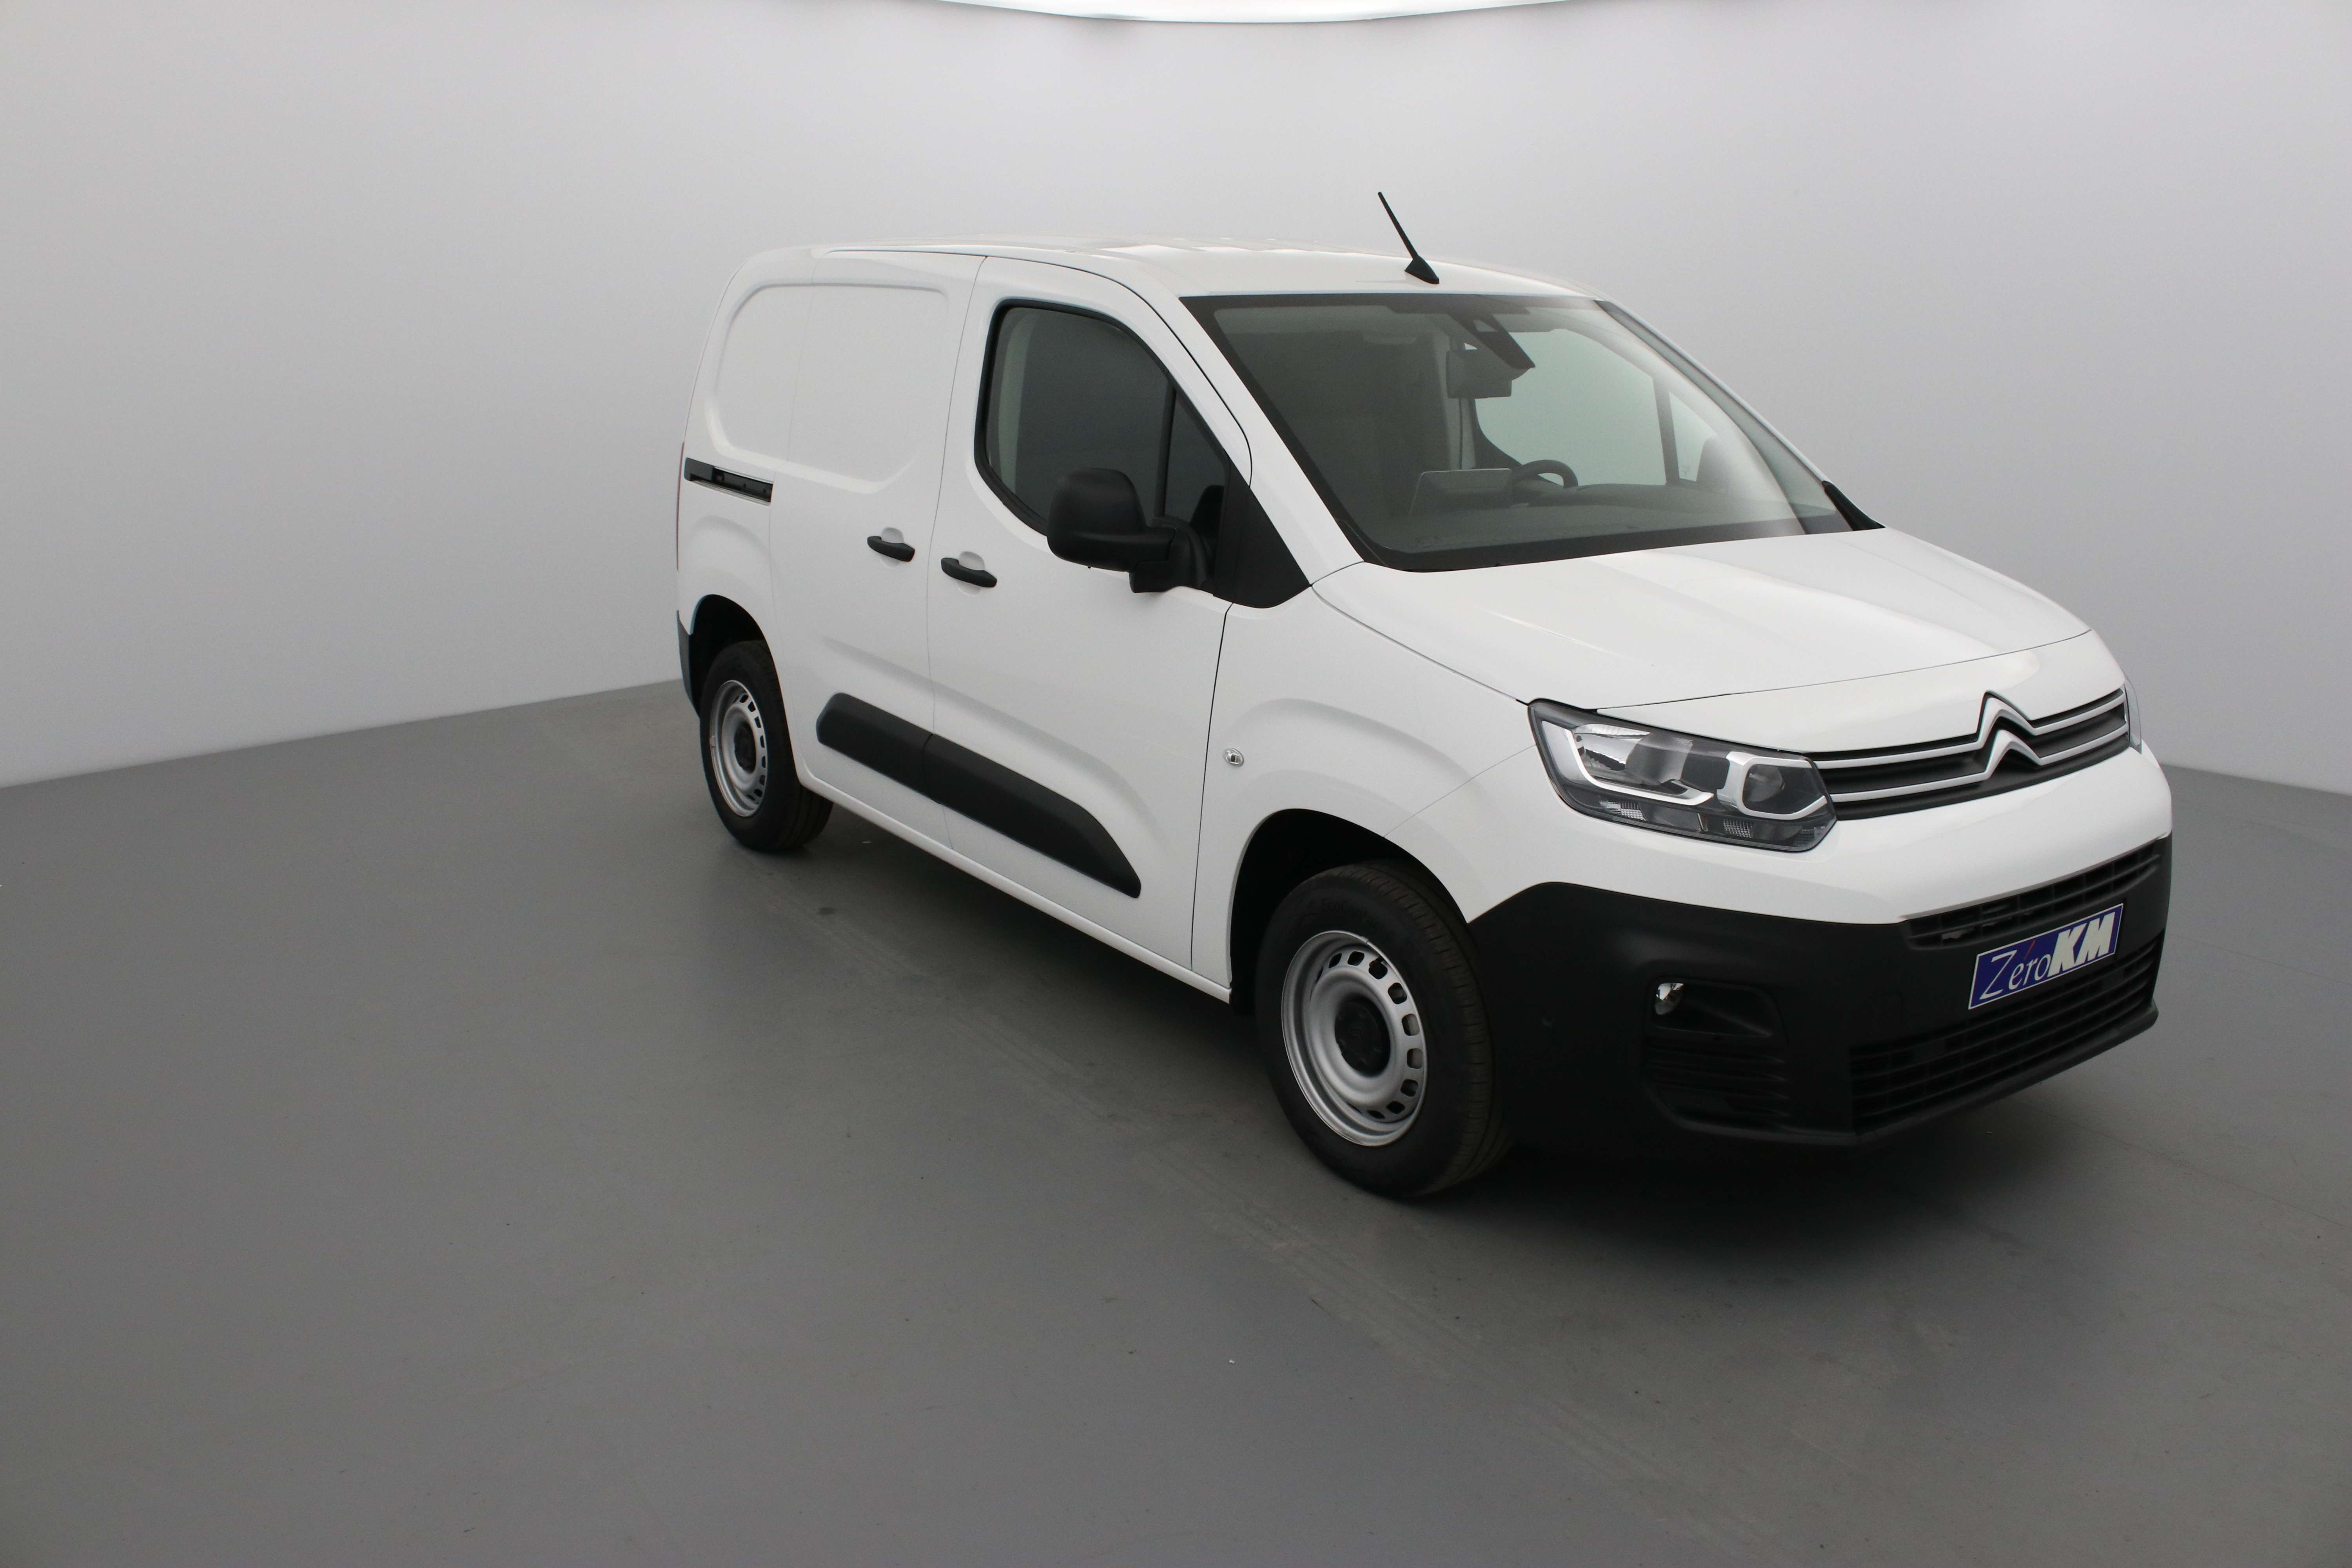 CITROEN BERLINGO VAN M 1.2 PURETECH 110 CLUB 3PL occasion